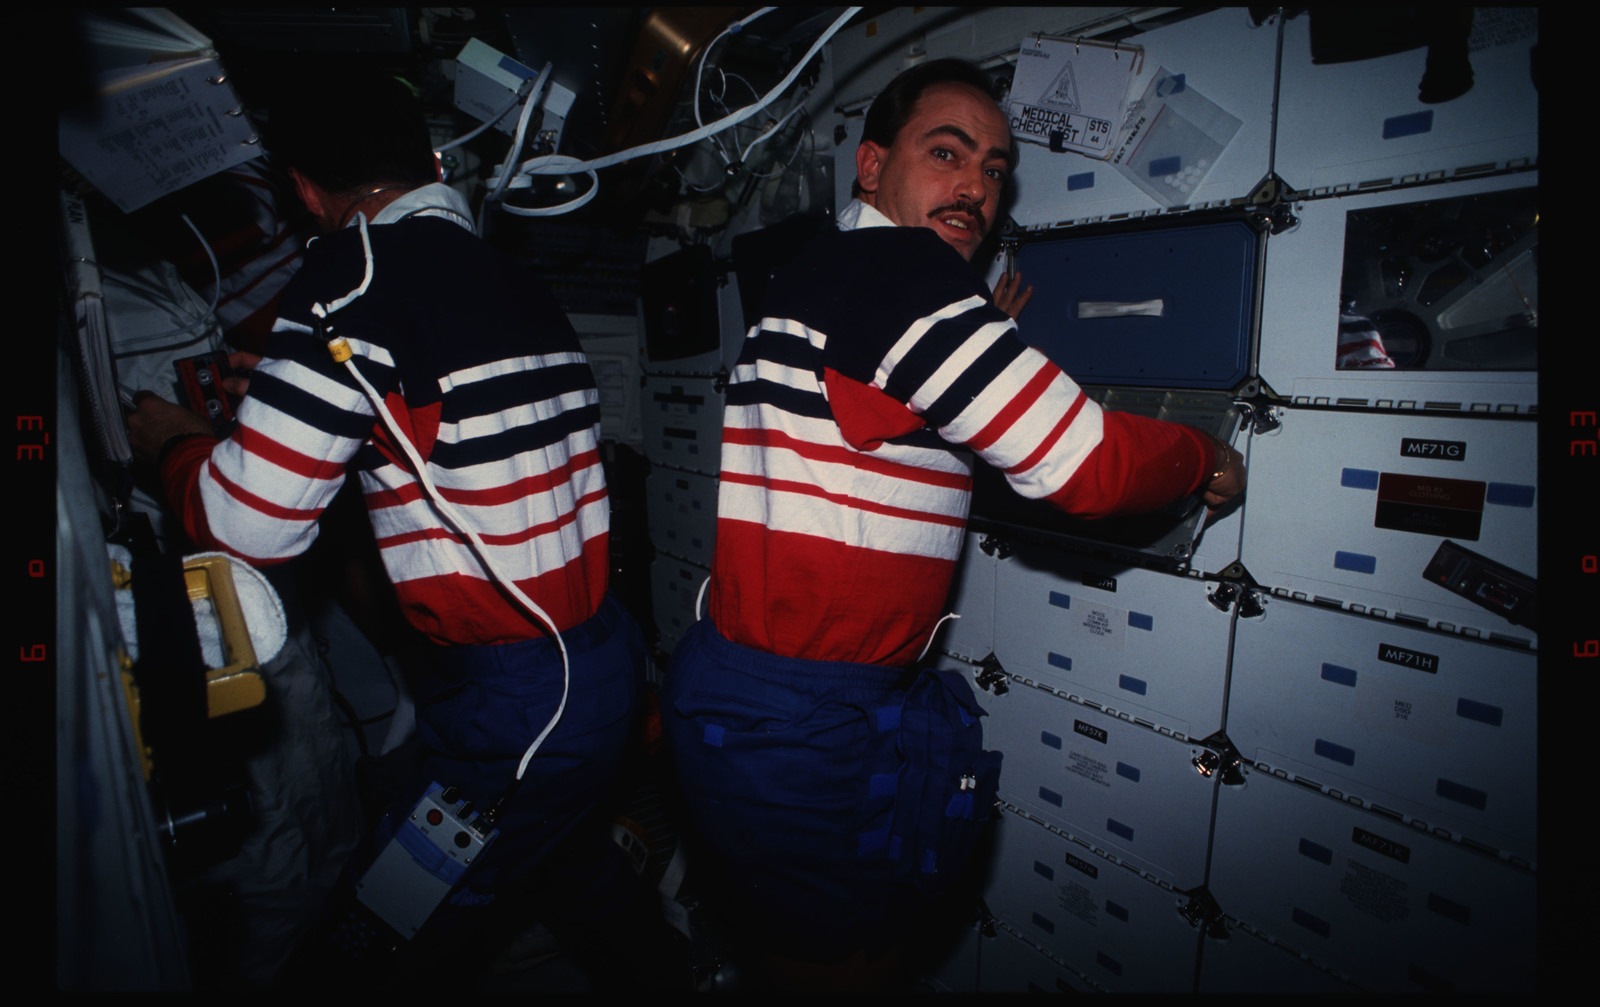 STS044-16-036 - STS-044 - STS-44 Pilot Henricks and PS Hennen work on OV-104's middeck